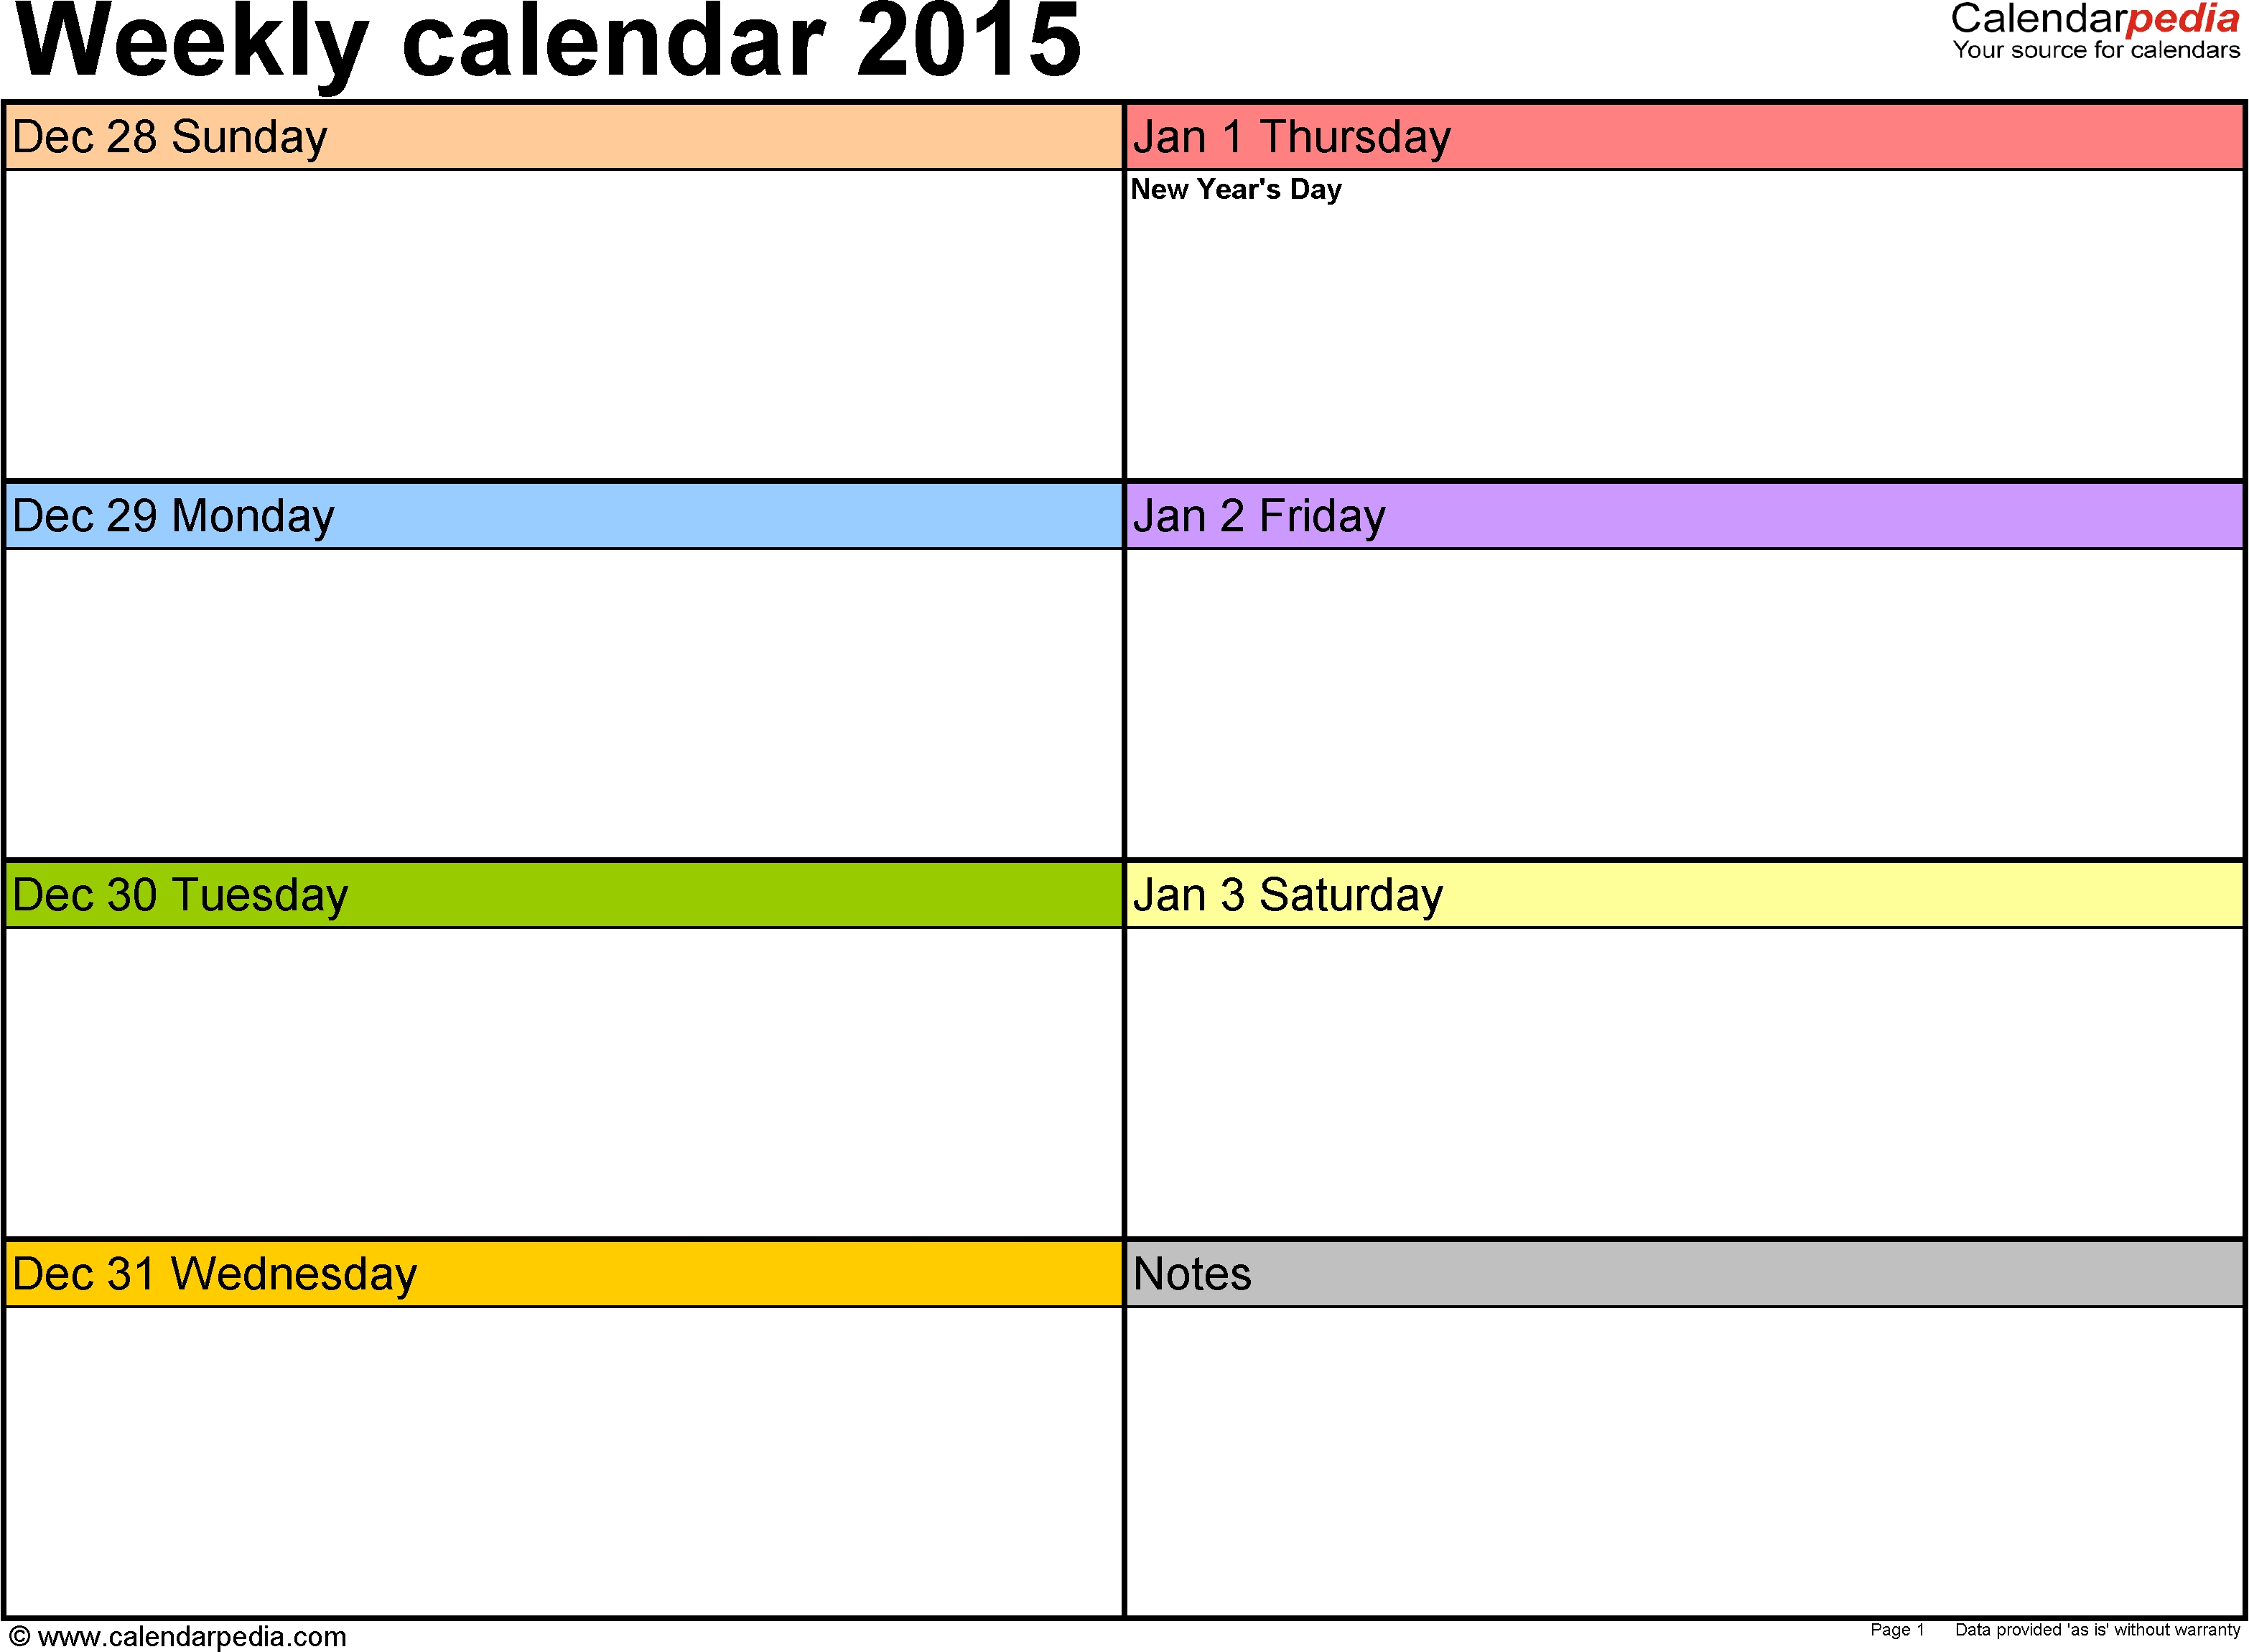 Weekly Calendar 2015 For Pdf - 12 Free Printable Templates with One Week Blank Calendar Printable